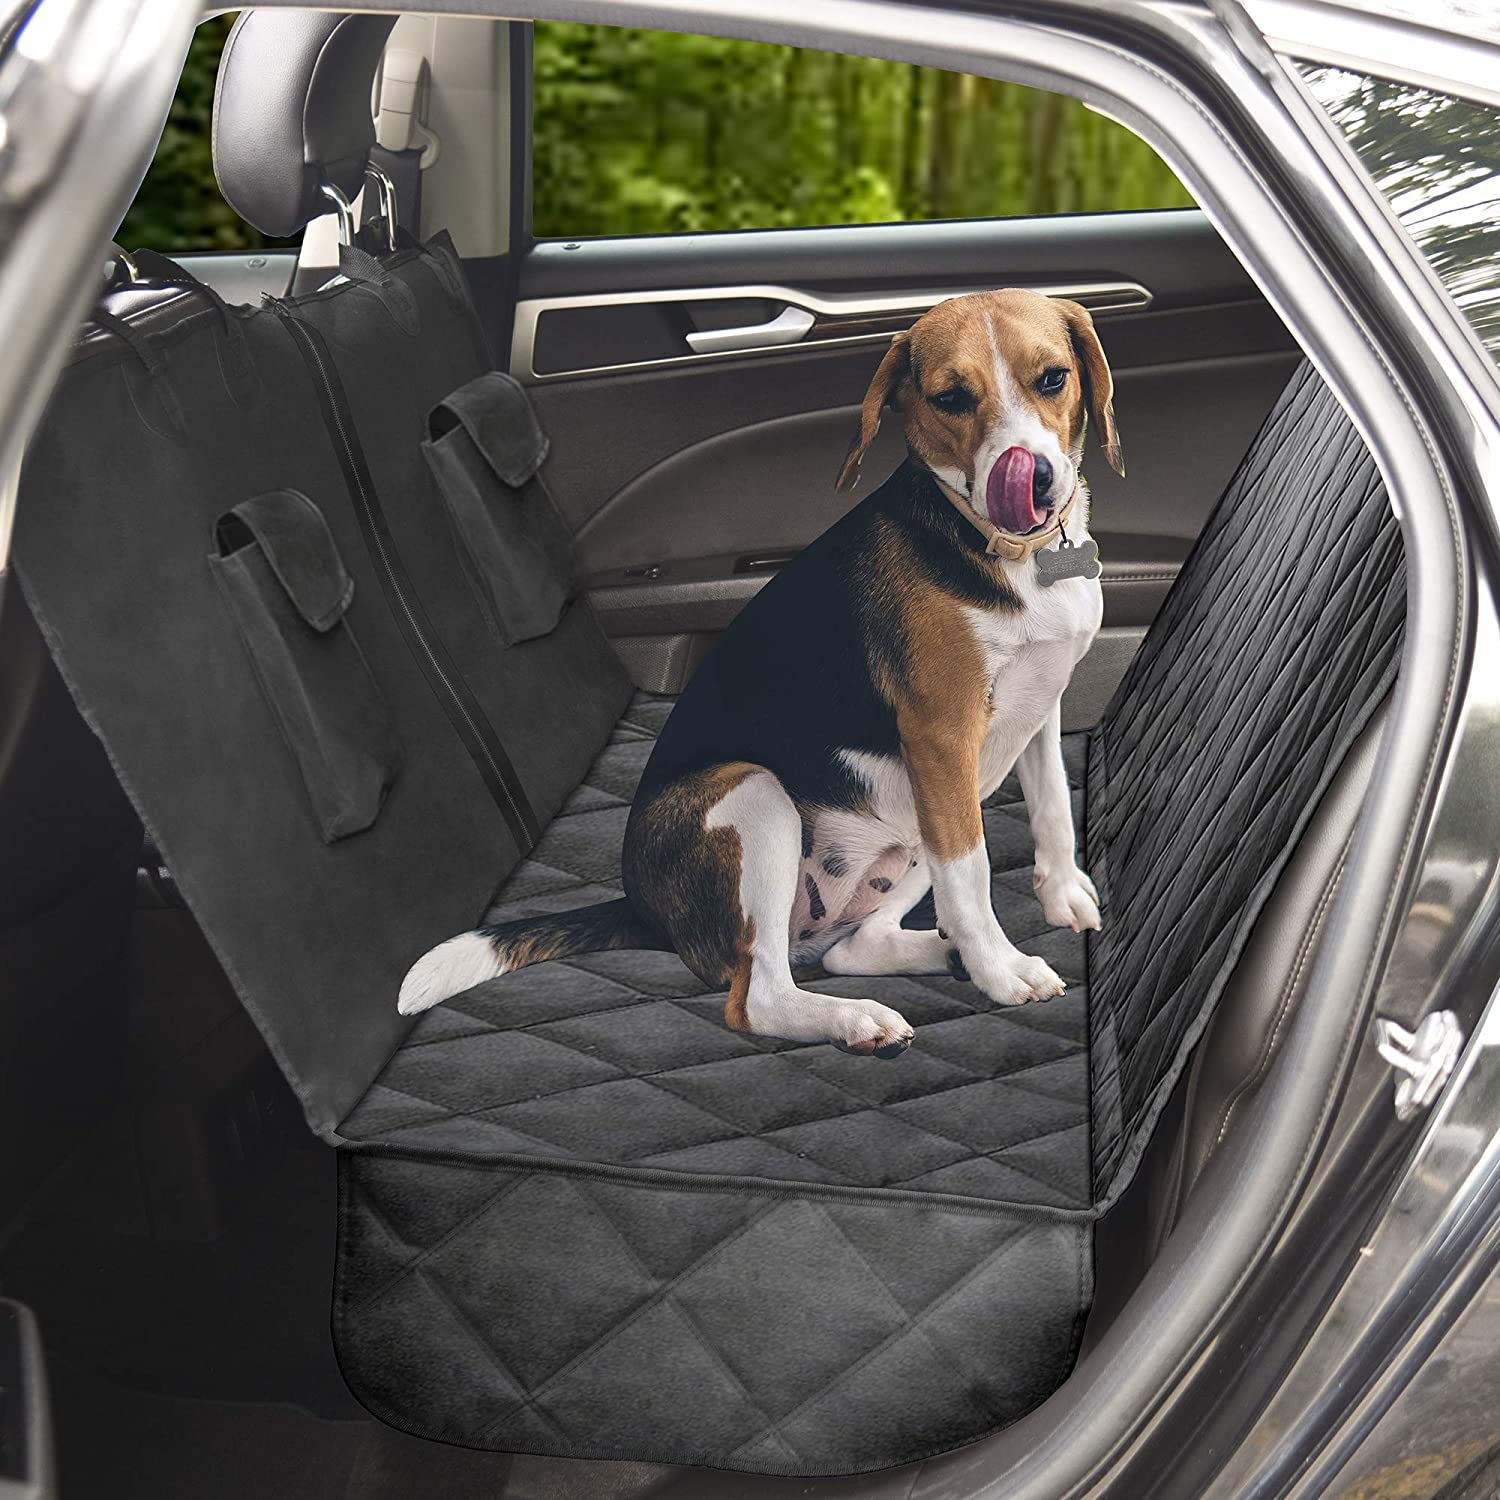 JACO ProtectPro Dog Car Seat Cover - Heavy Duty, Waterproof, and Scratch Proof Back Seat Protector - Travel Pet Hammock for Car, Truck, and SUV - Universal Fit